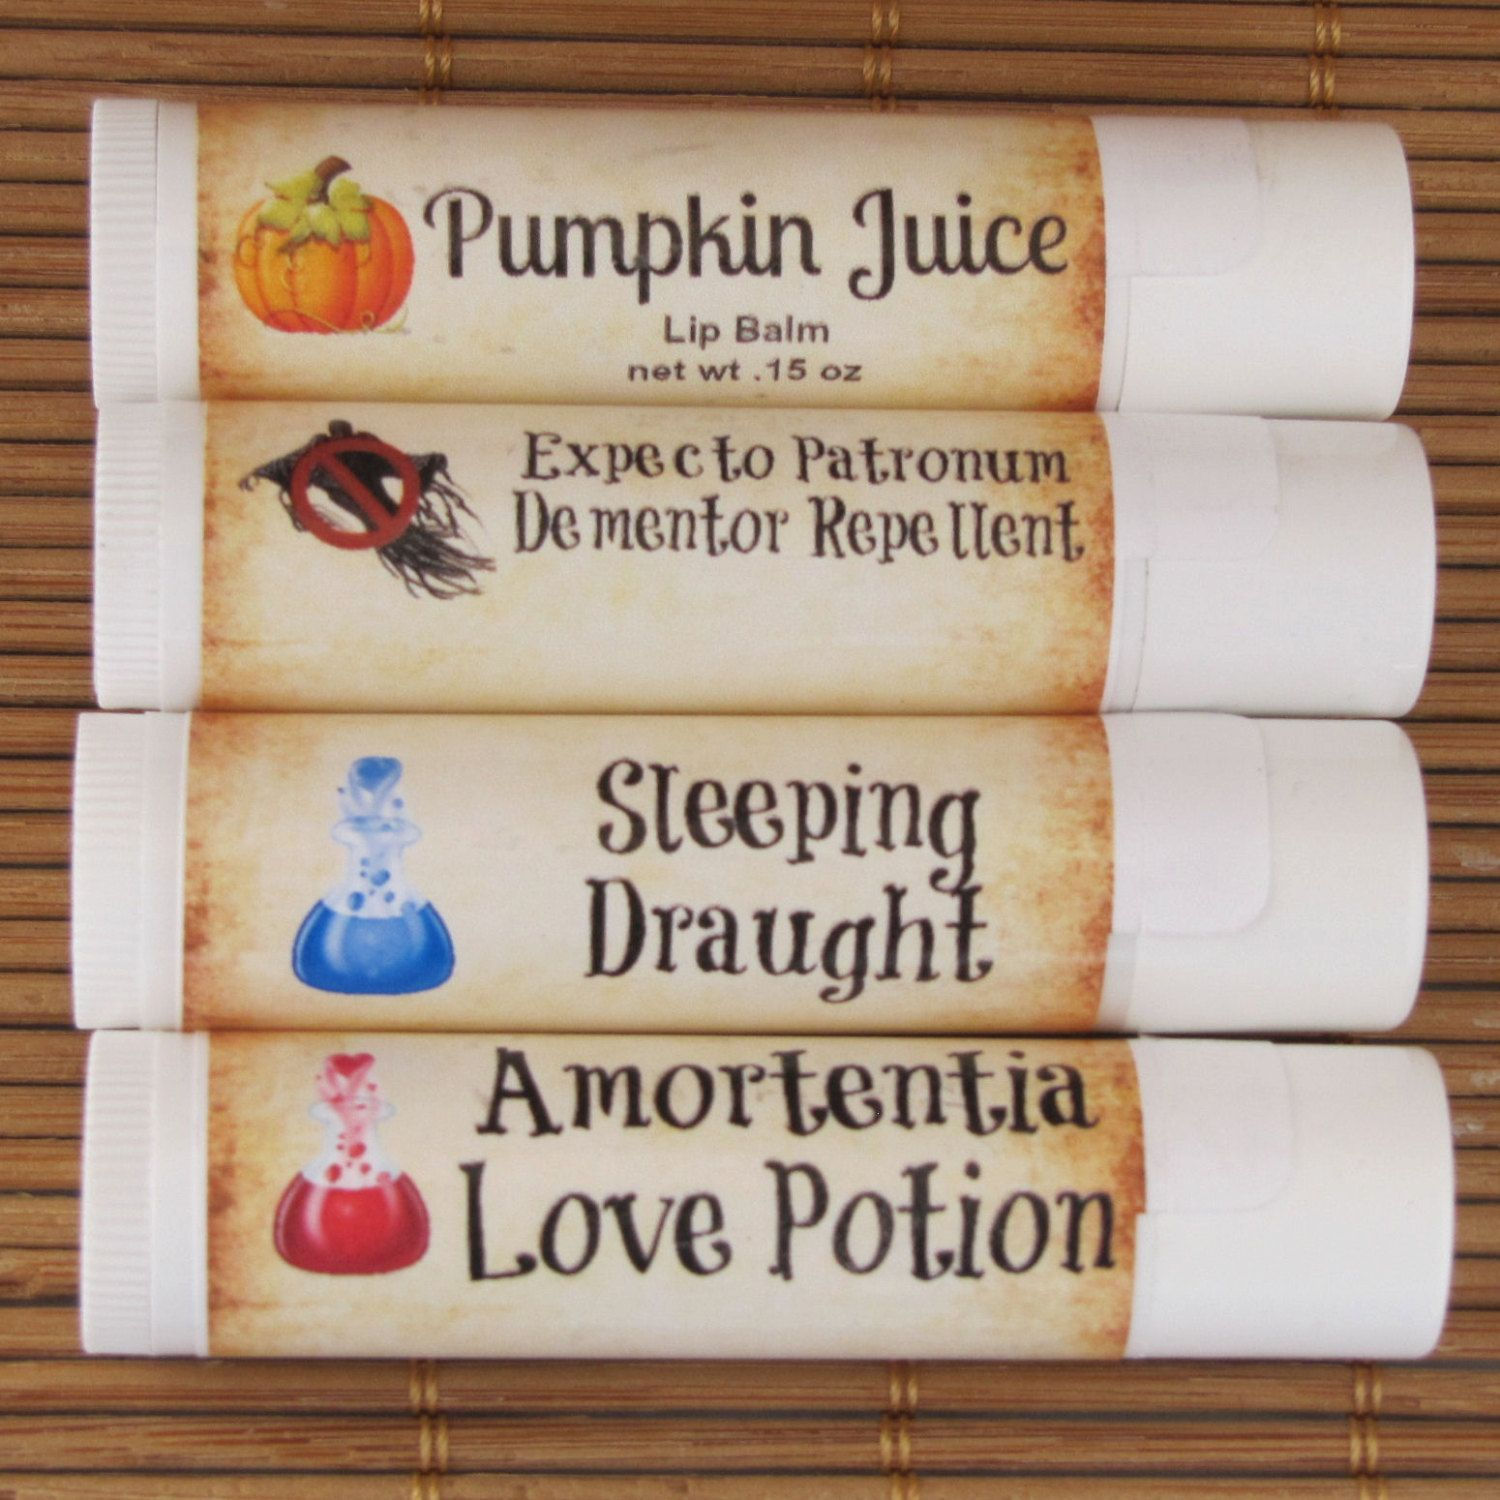 Harry Potter Potions Lip Balm 4 Pack - Handmade Lip Balm - Love Potion, Sleeping Draught, Expecto Patronum, and Pumpkin Juice by CherryPitCrafts on Etsy